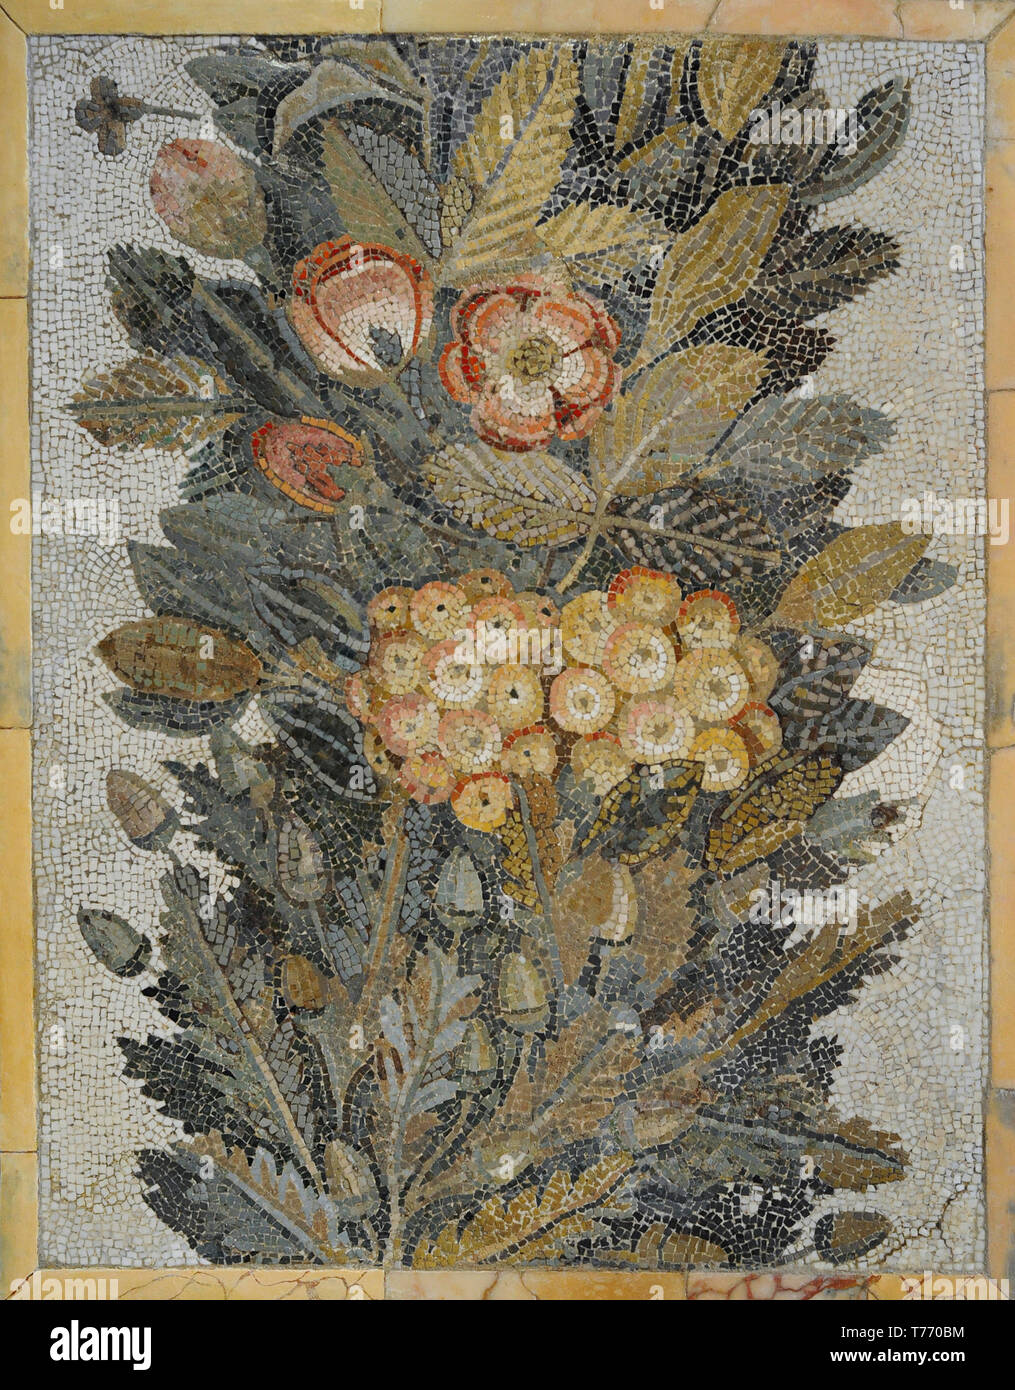 Roman floral mosaic. 1st century AD. Limestone and vitreous paste. From Italy. National Archaeological Museum. Madrid. Spain. - Stock Image